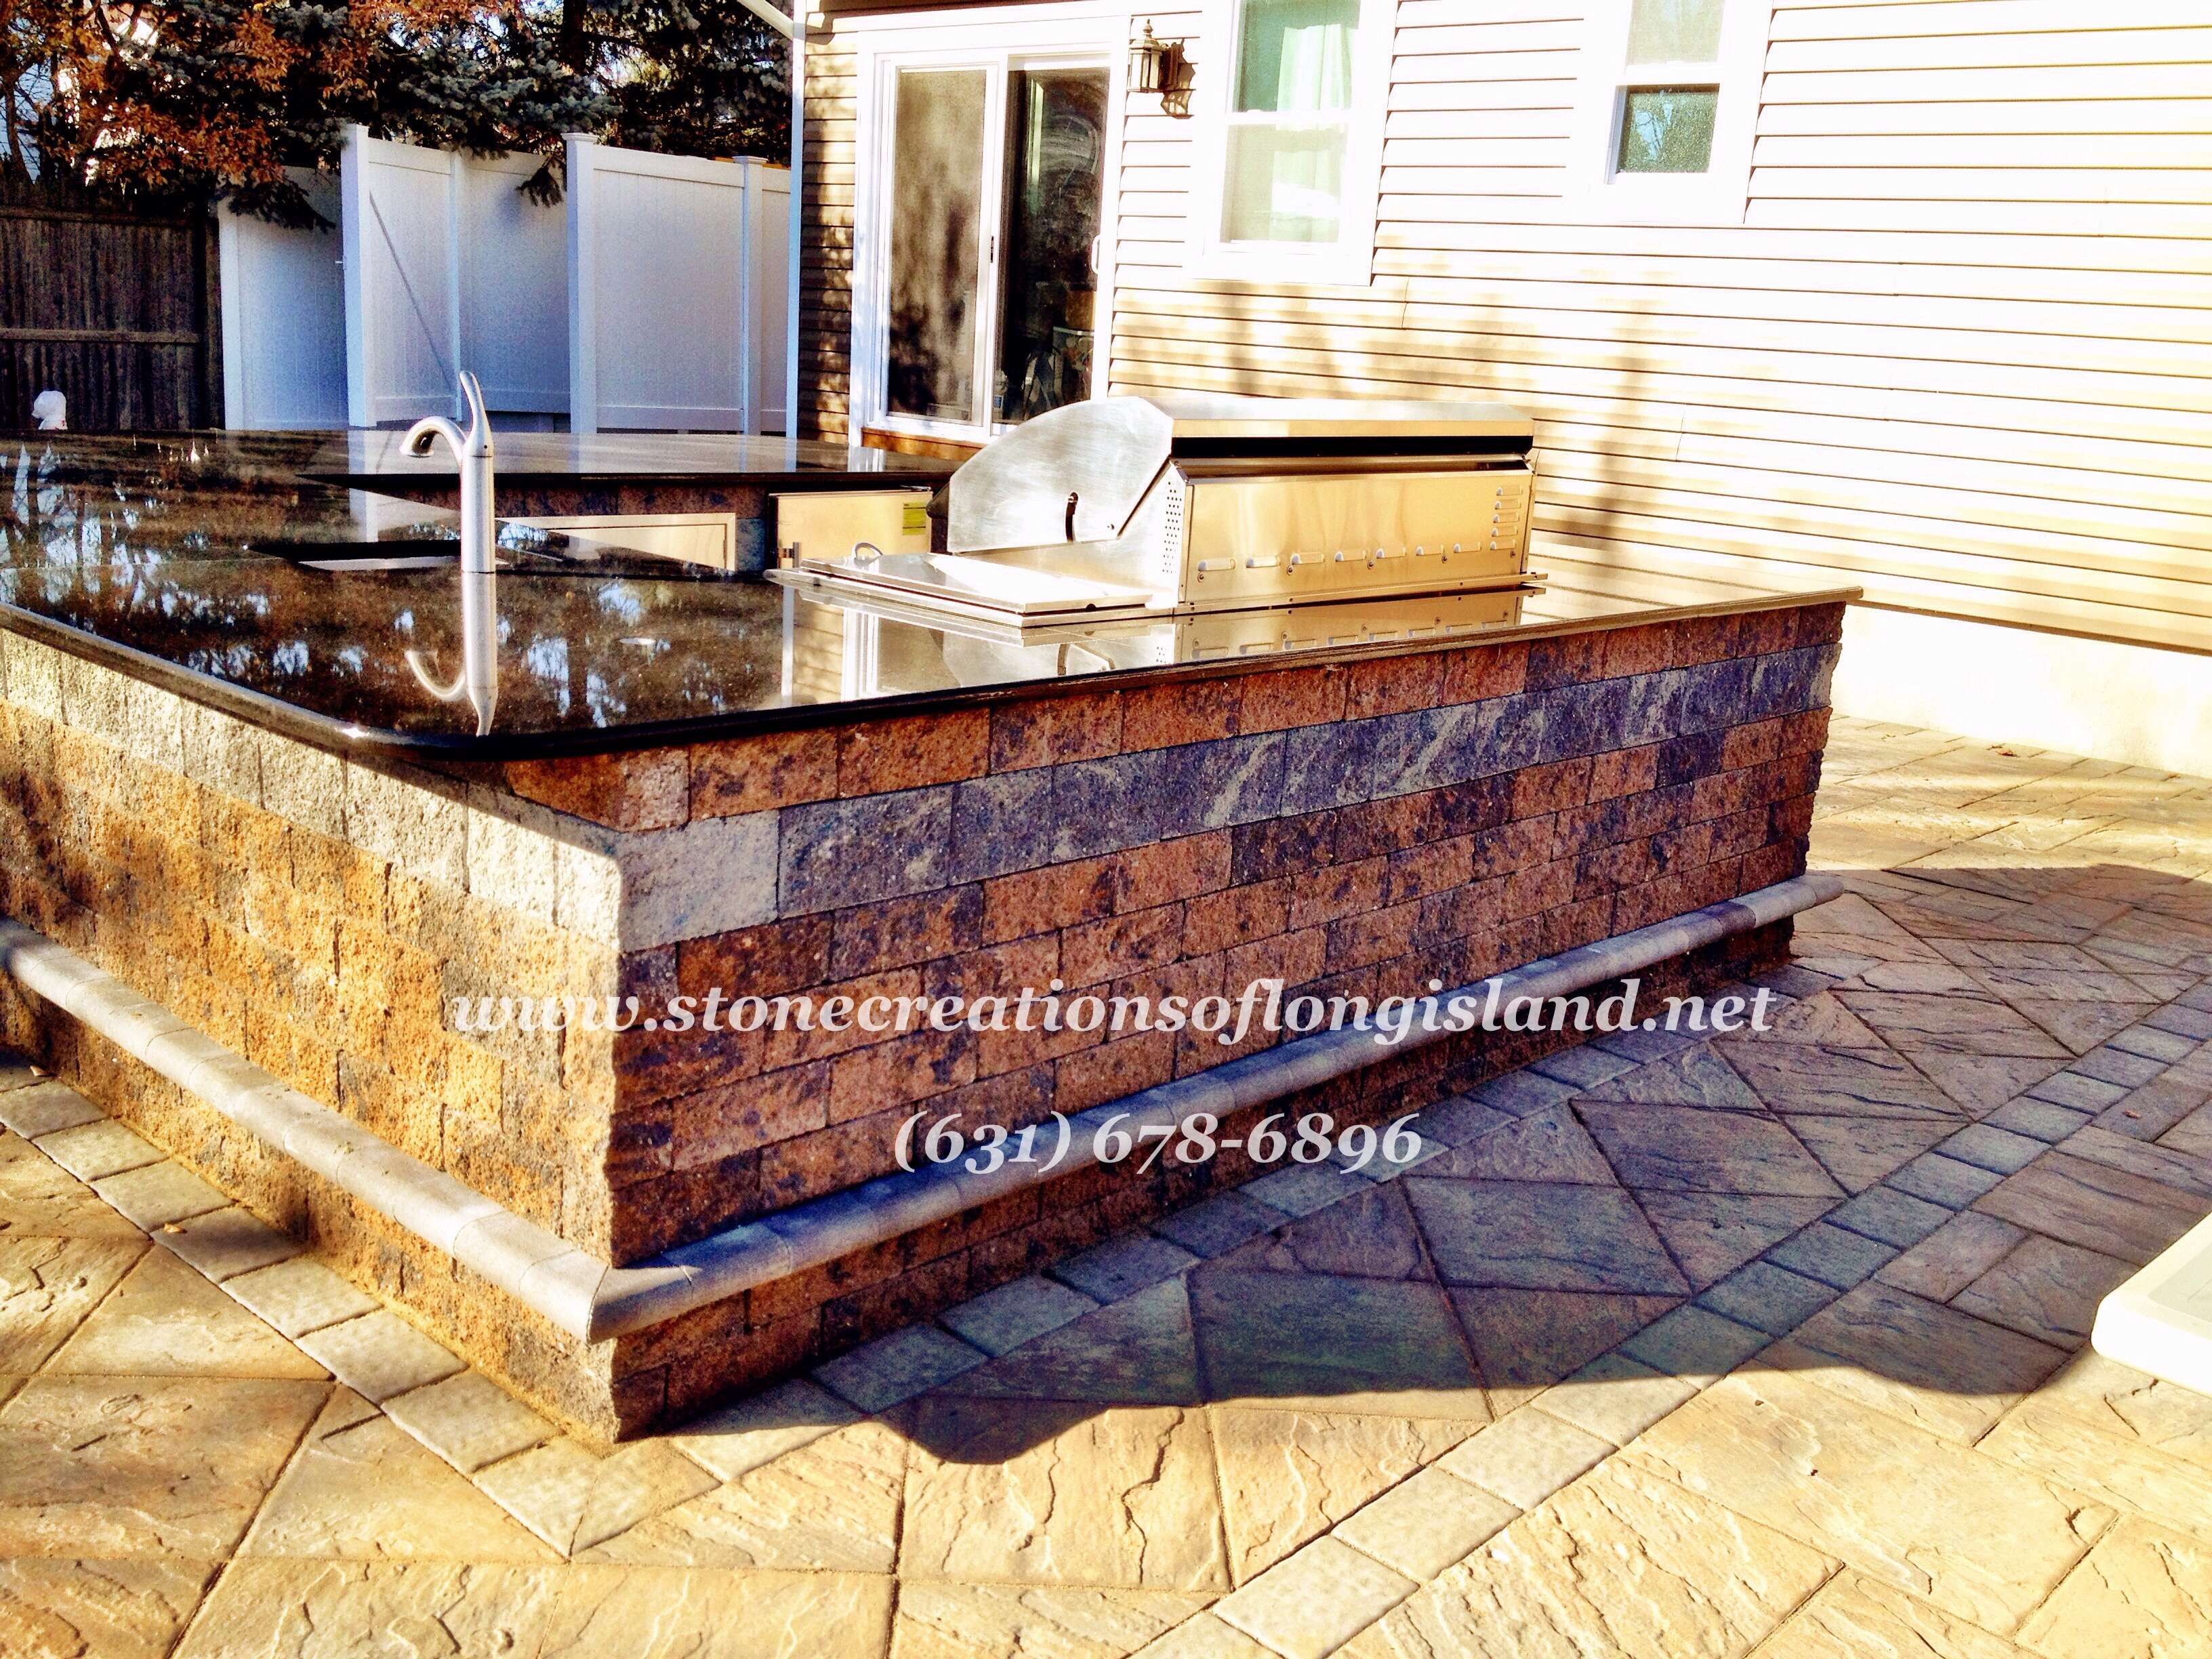 How To Seal Bluestone Countertops Stone Creations Of Long Island Pavers And Masonry Corp